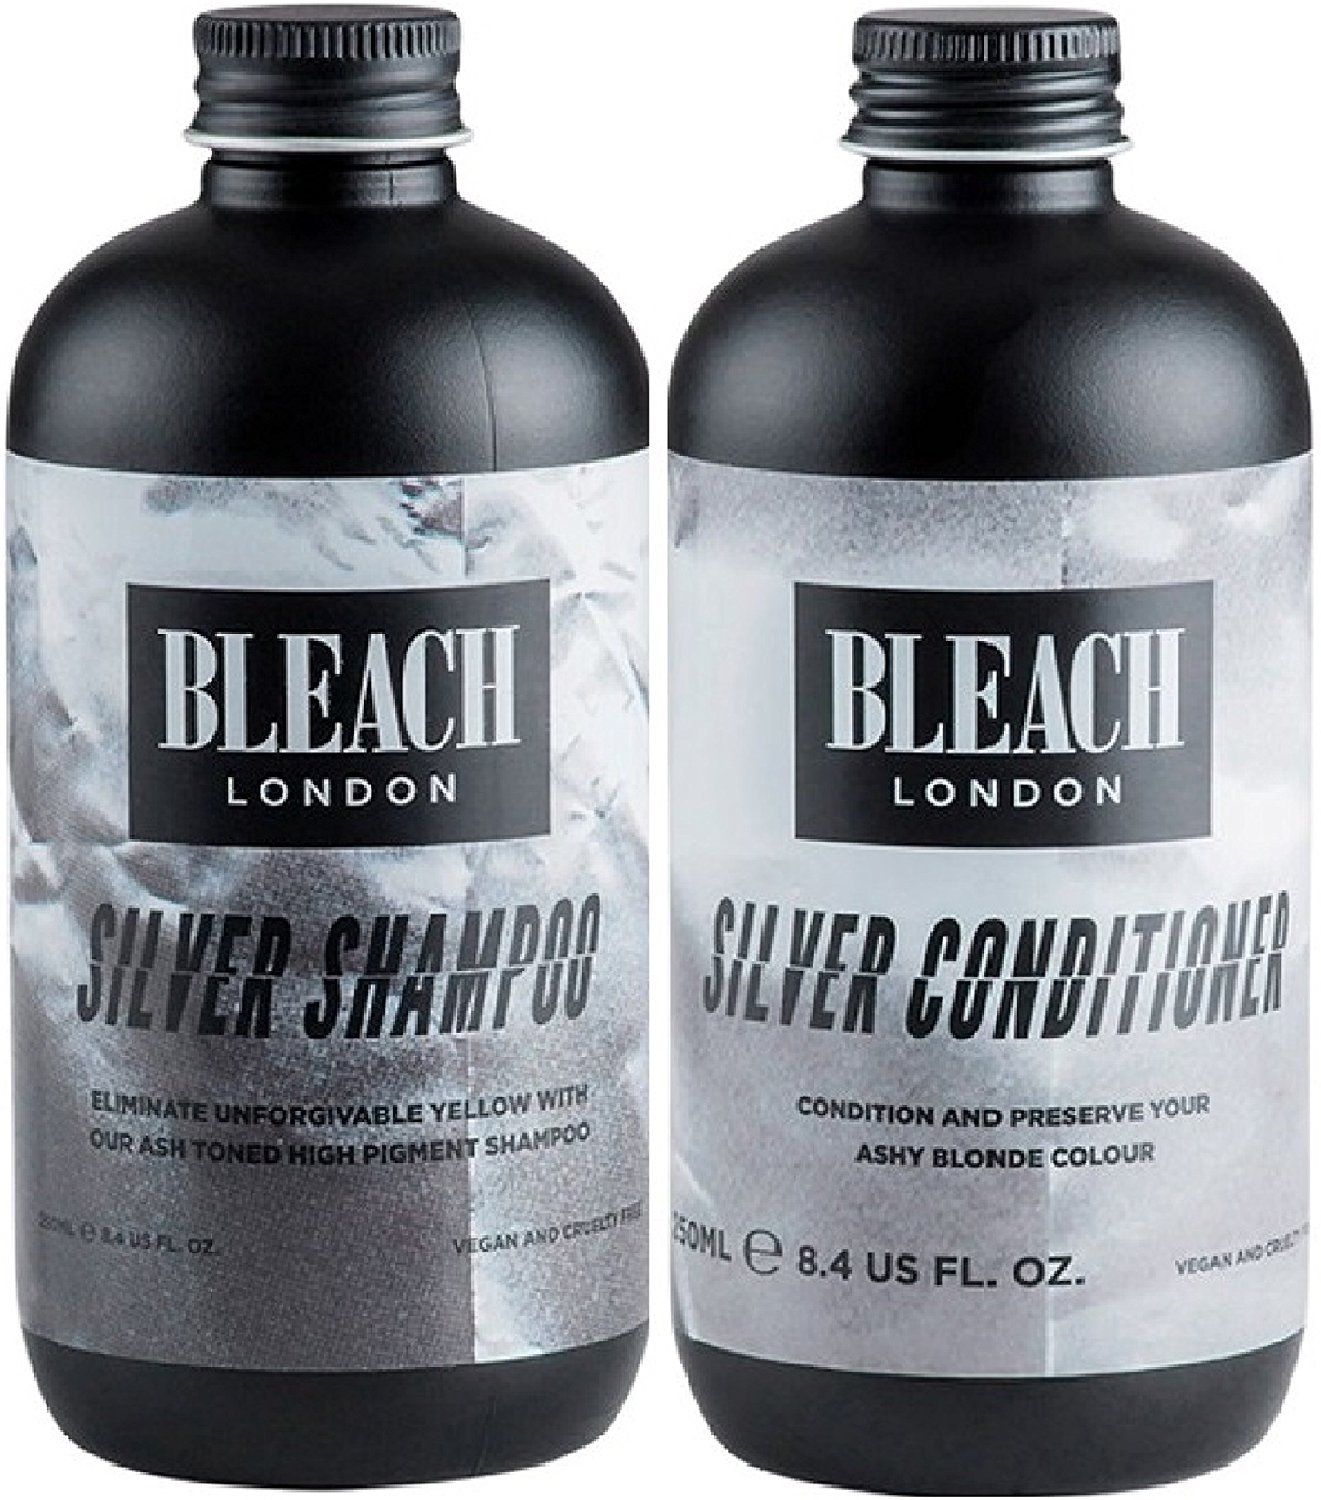 (2 PACK) Bleach London Silver Shampoo x 250ml & Bleach London Silver Conditioner x 250ml